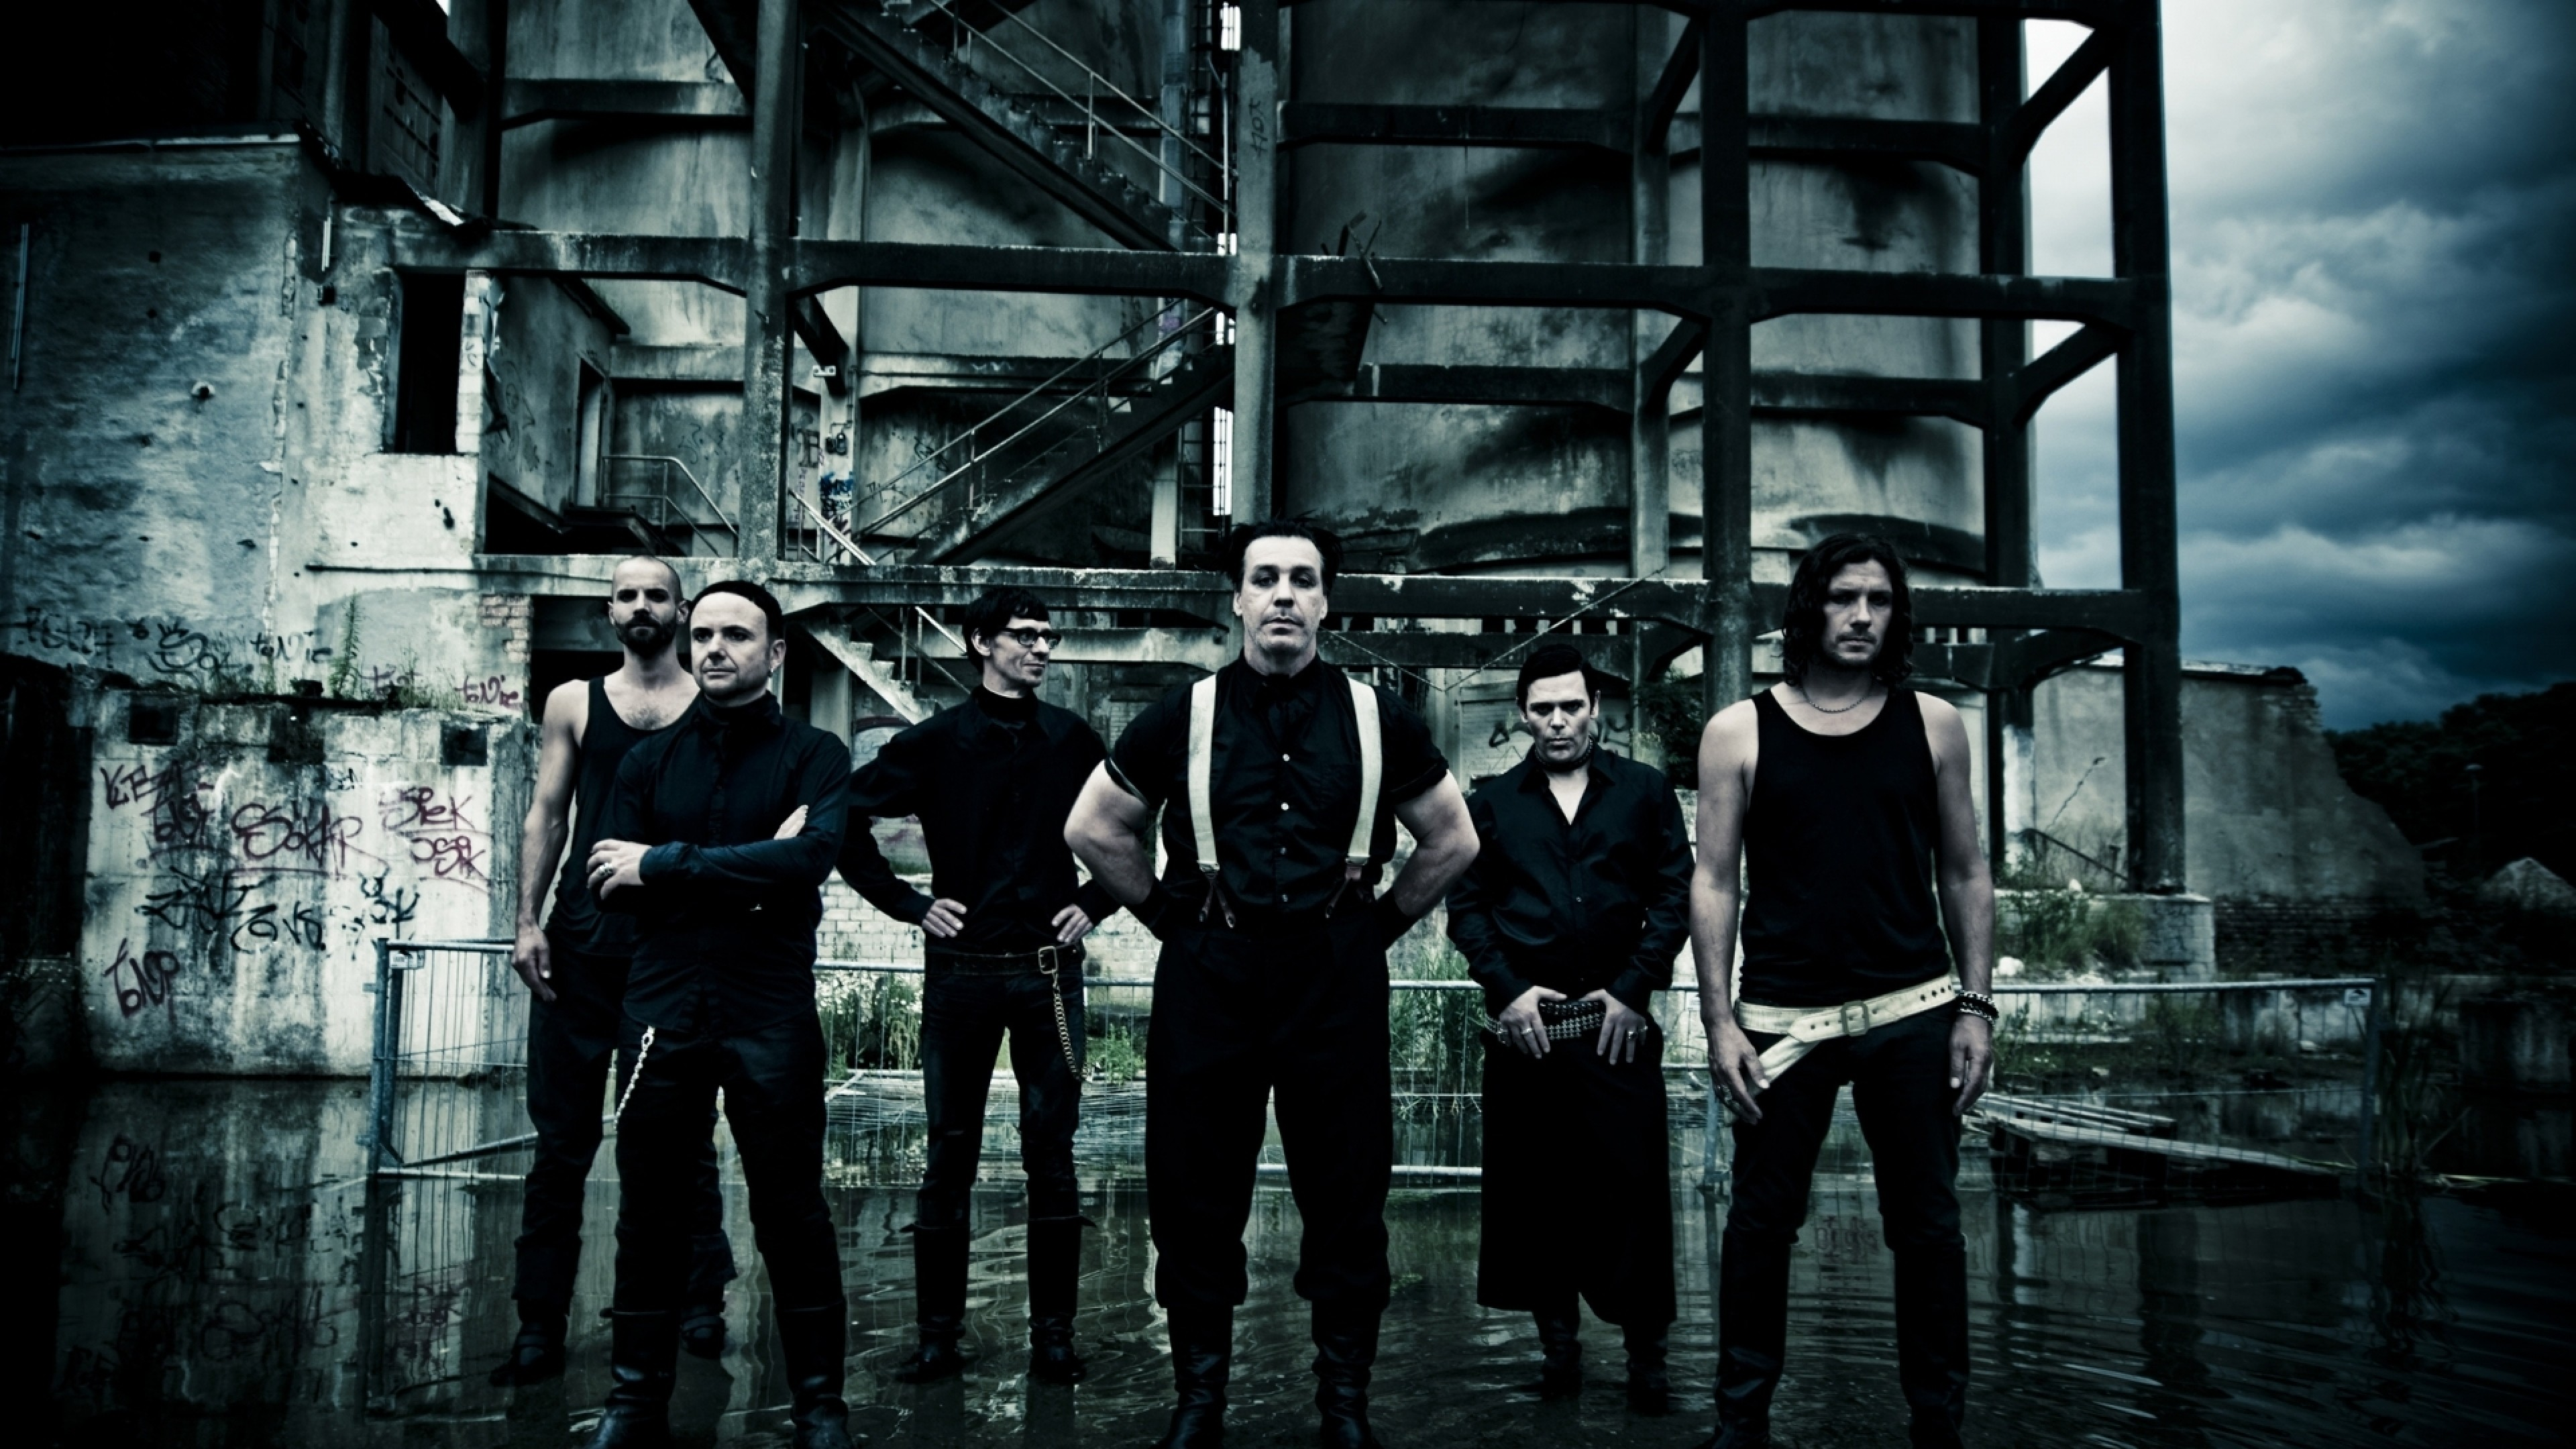 3840x2160 Preview wallpaper rammstein, band, members, gloom, outdoors